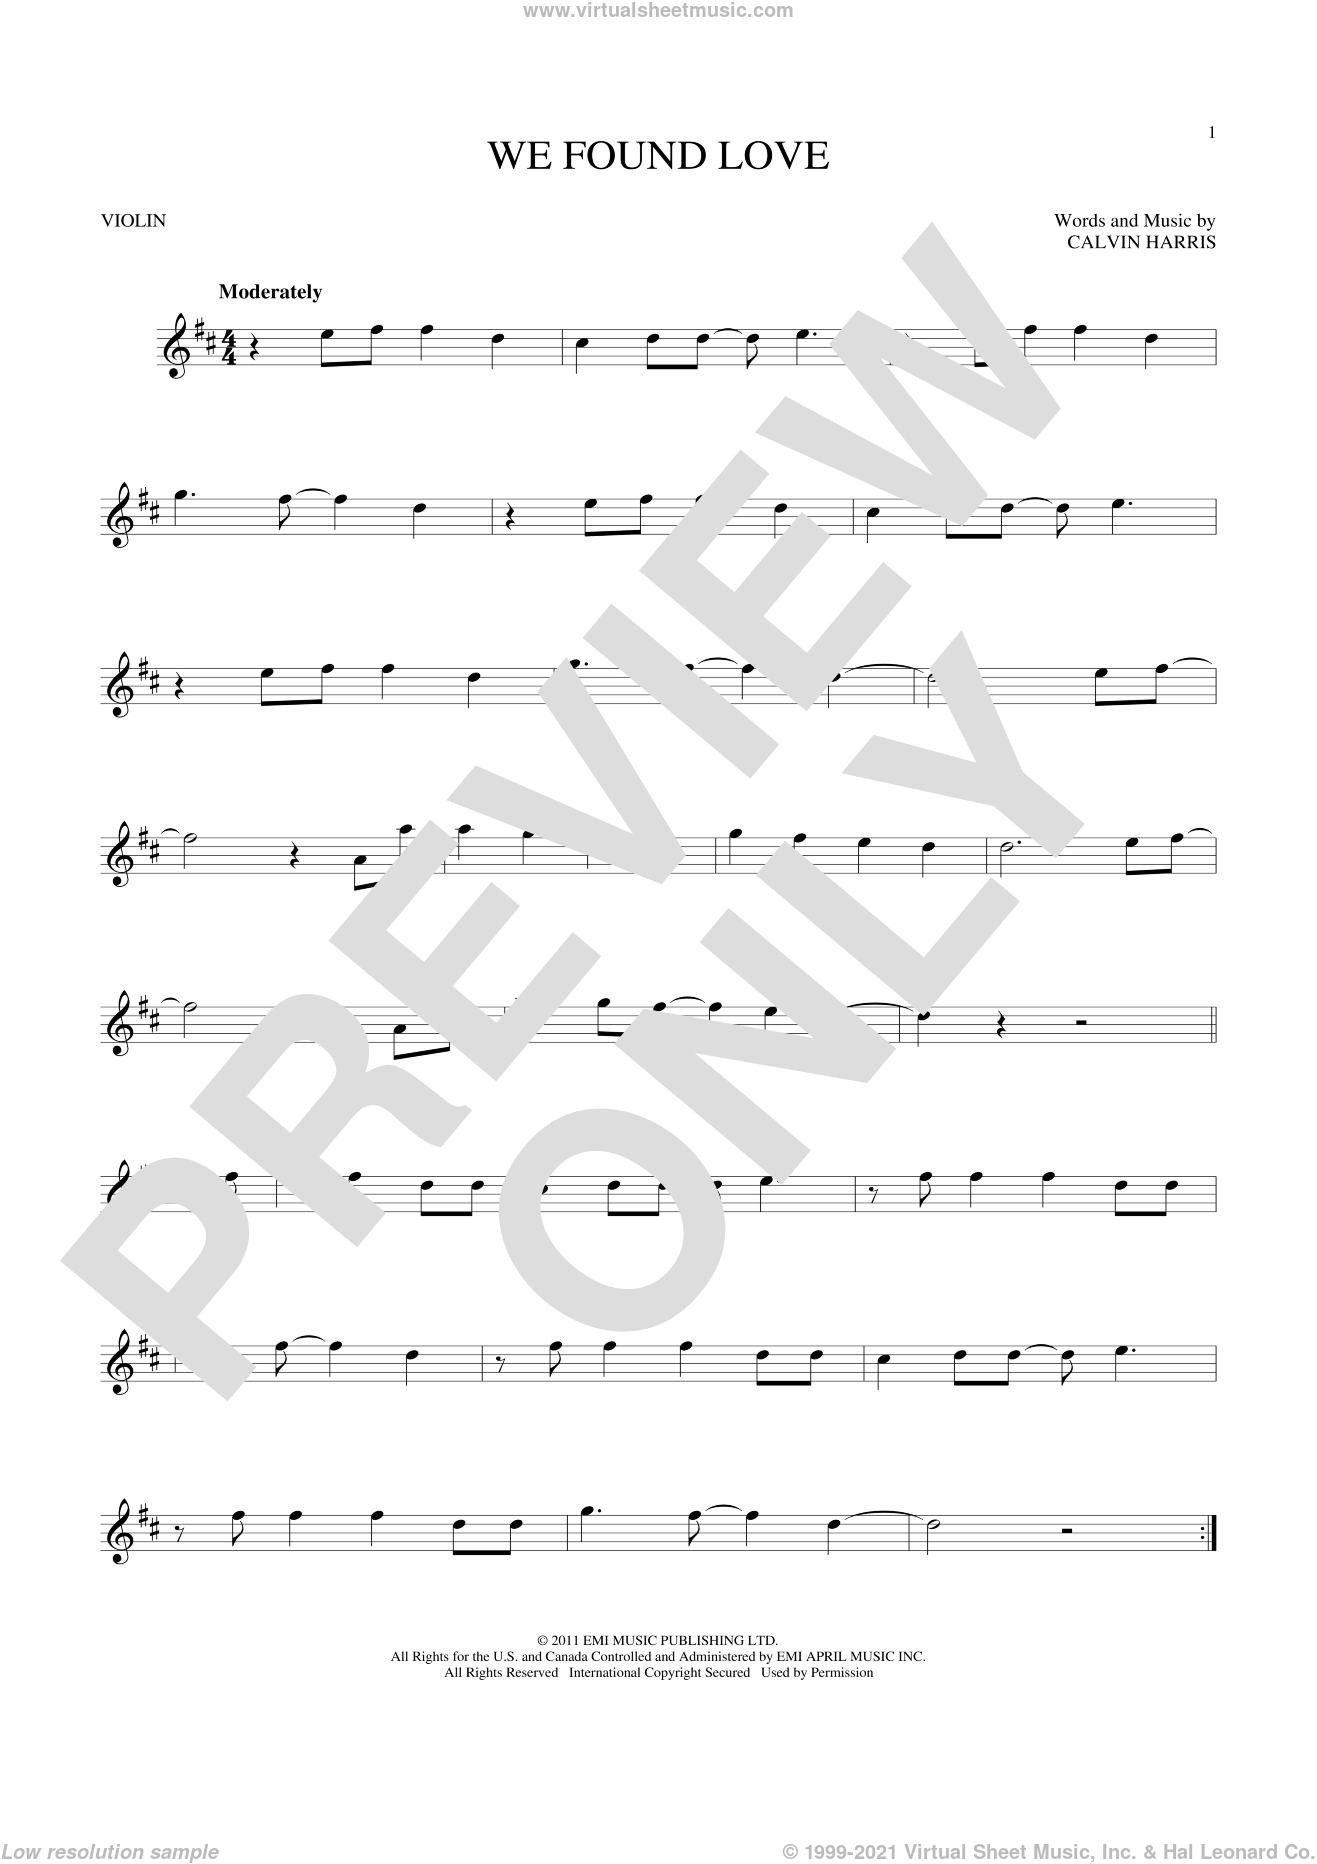 We Found Love sheet music for violin solo by Rihanna featuring Calvin Harris and Calvin Harris, wedding score, intermediate skill level